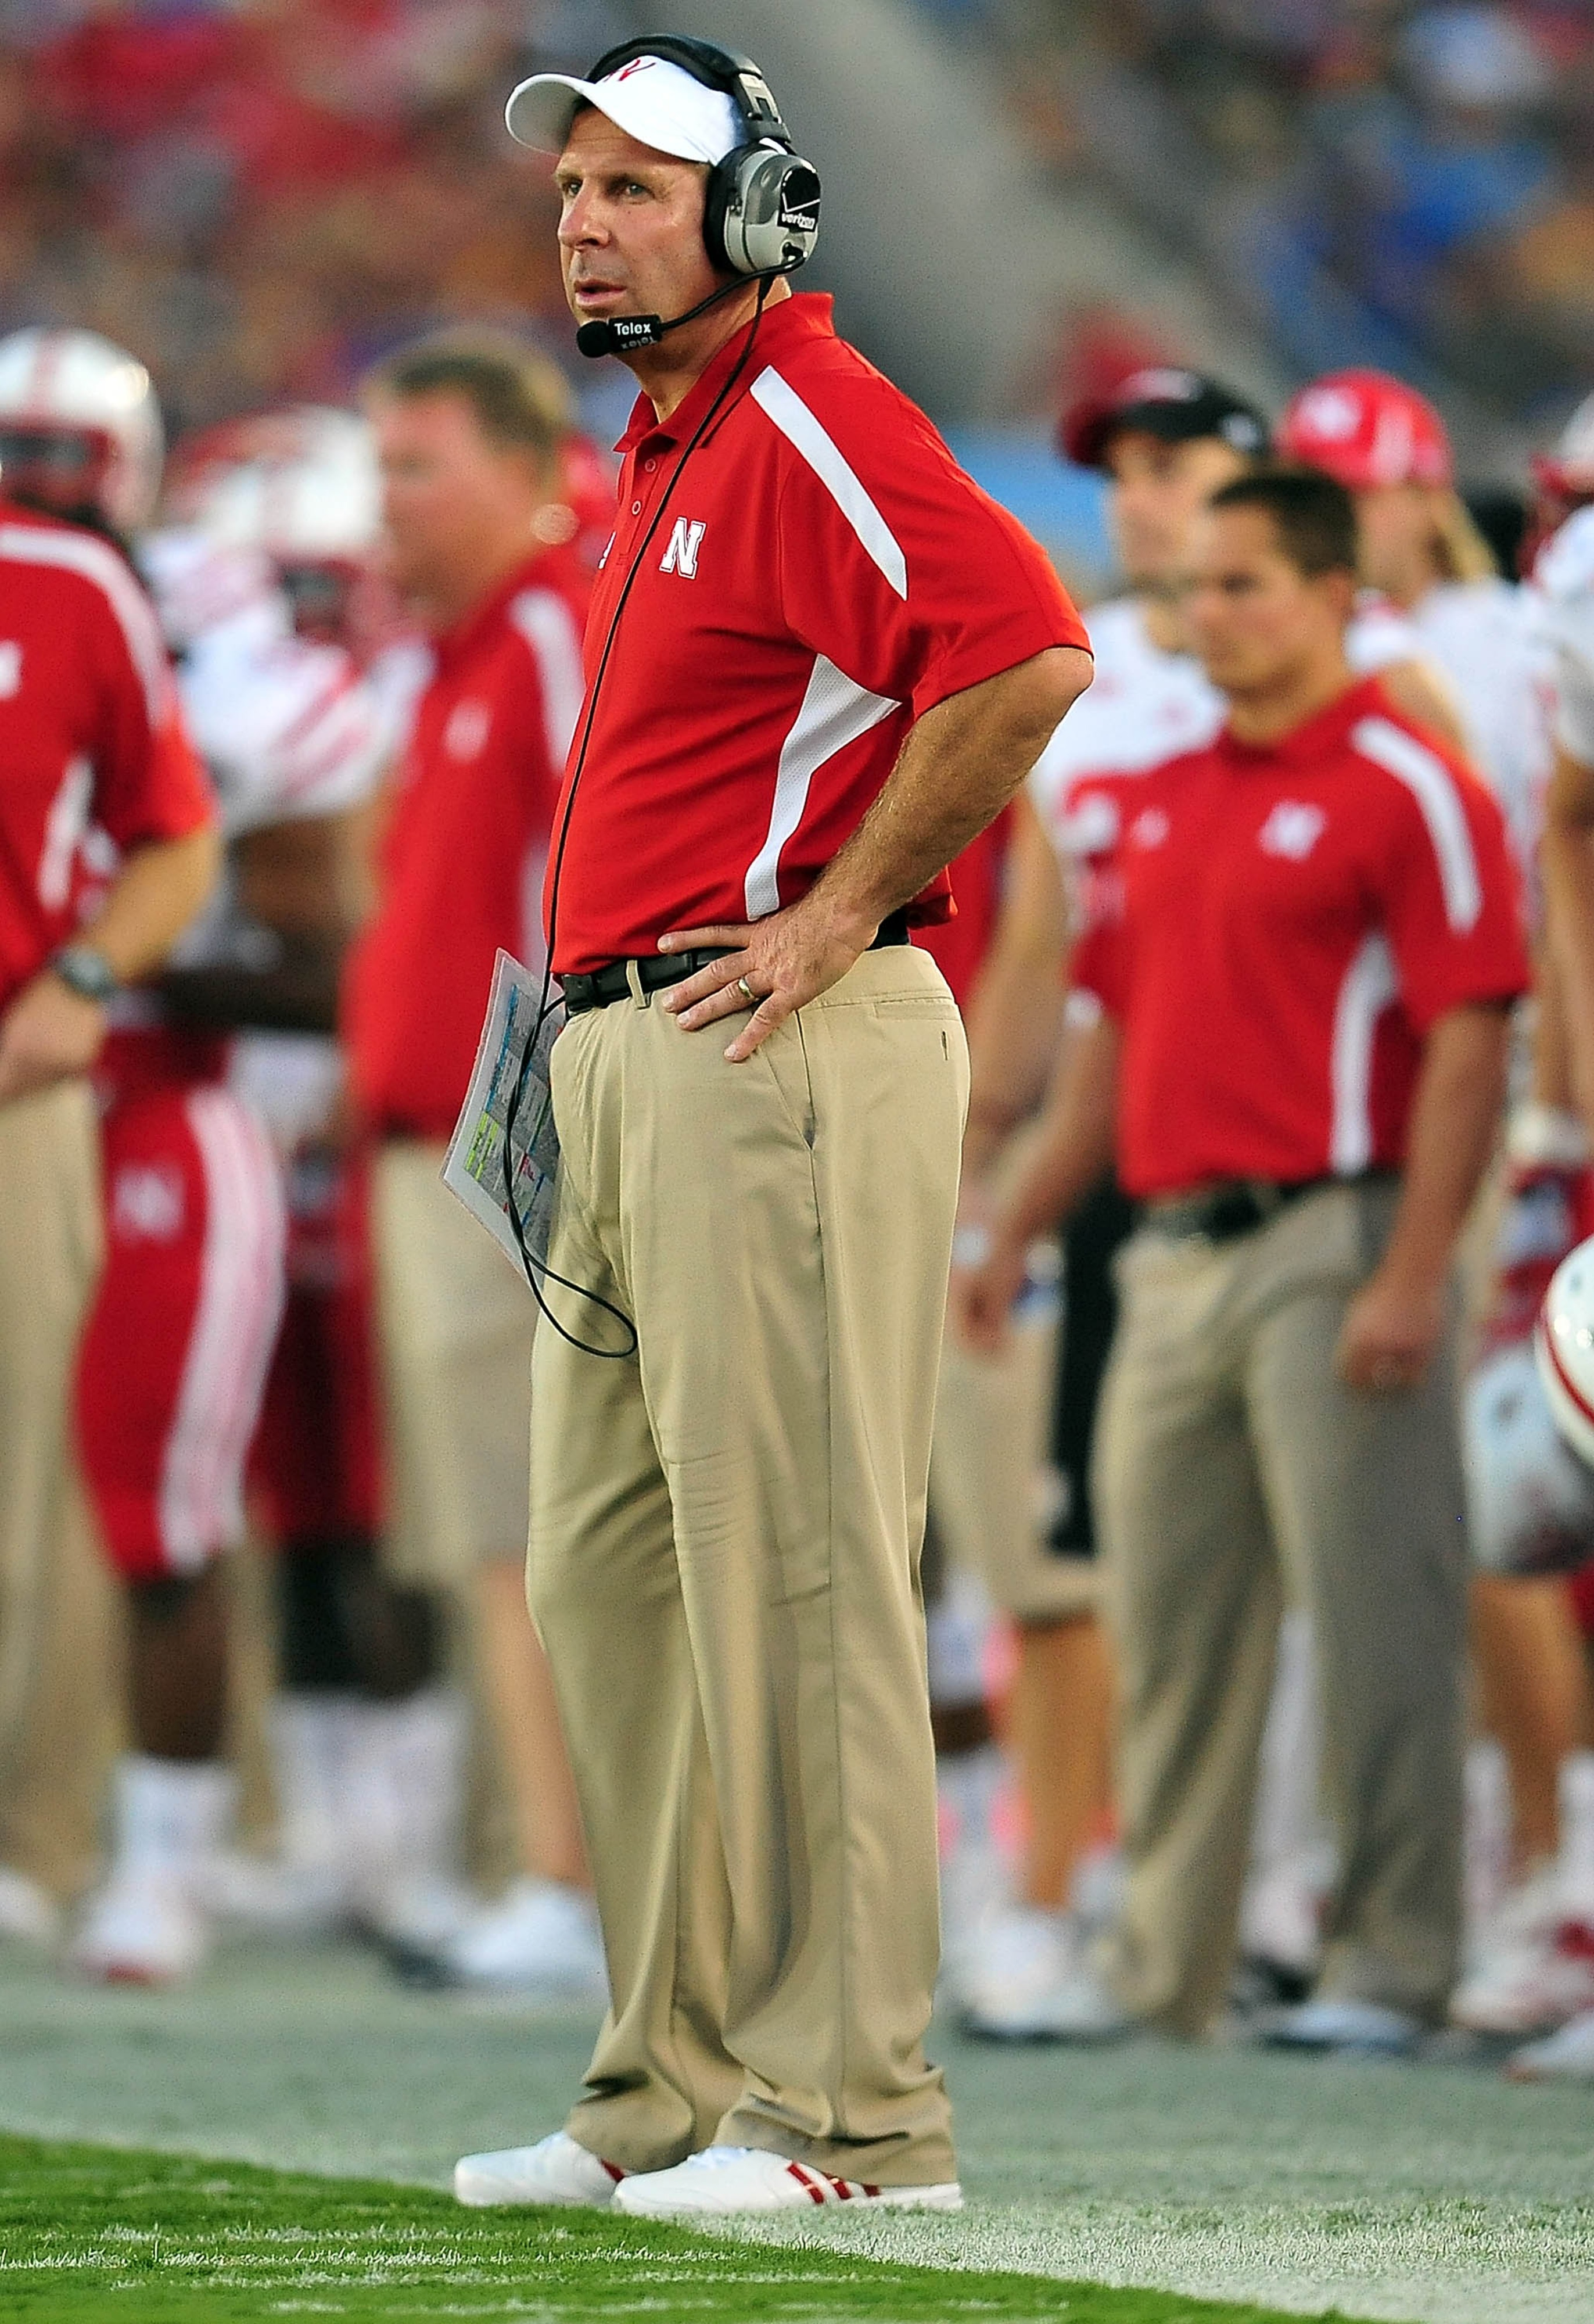 Sorry, Coach Pelini, your team's loss wasn't ridiculous.